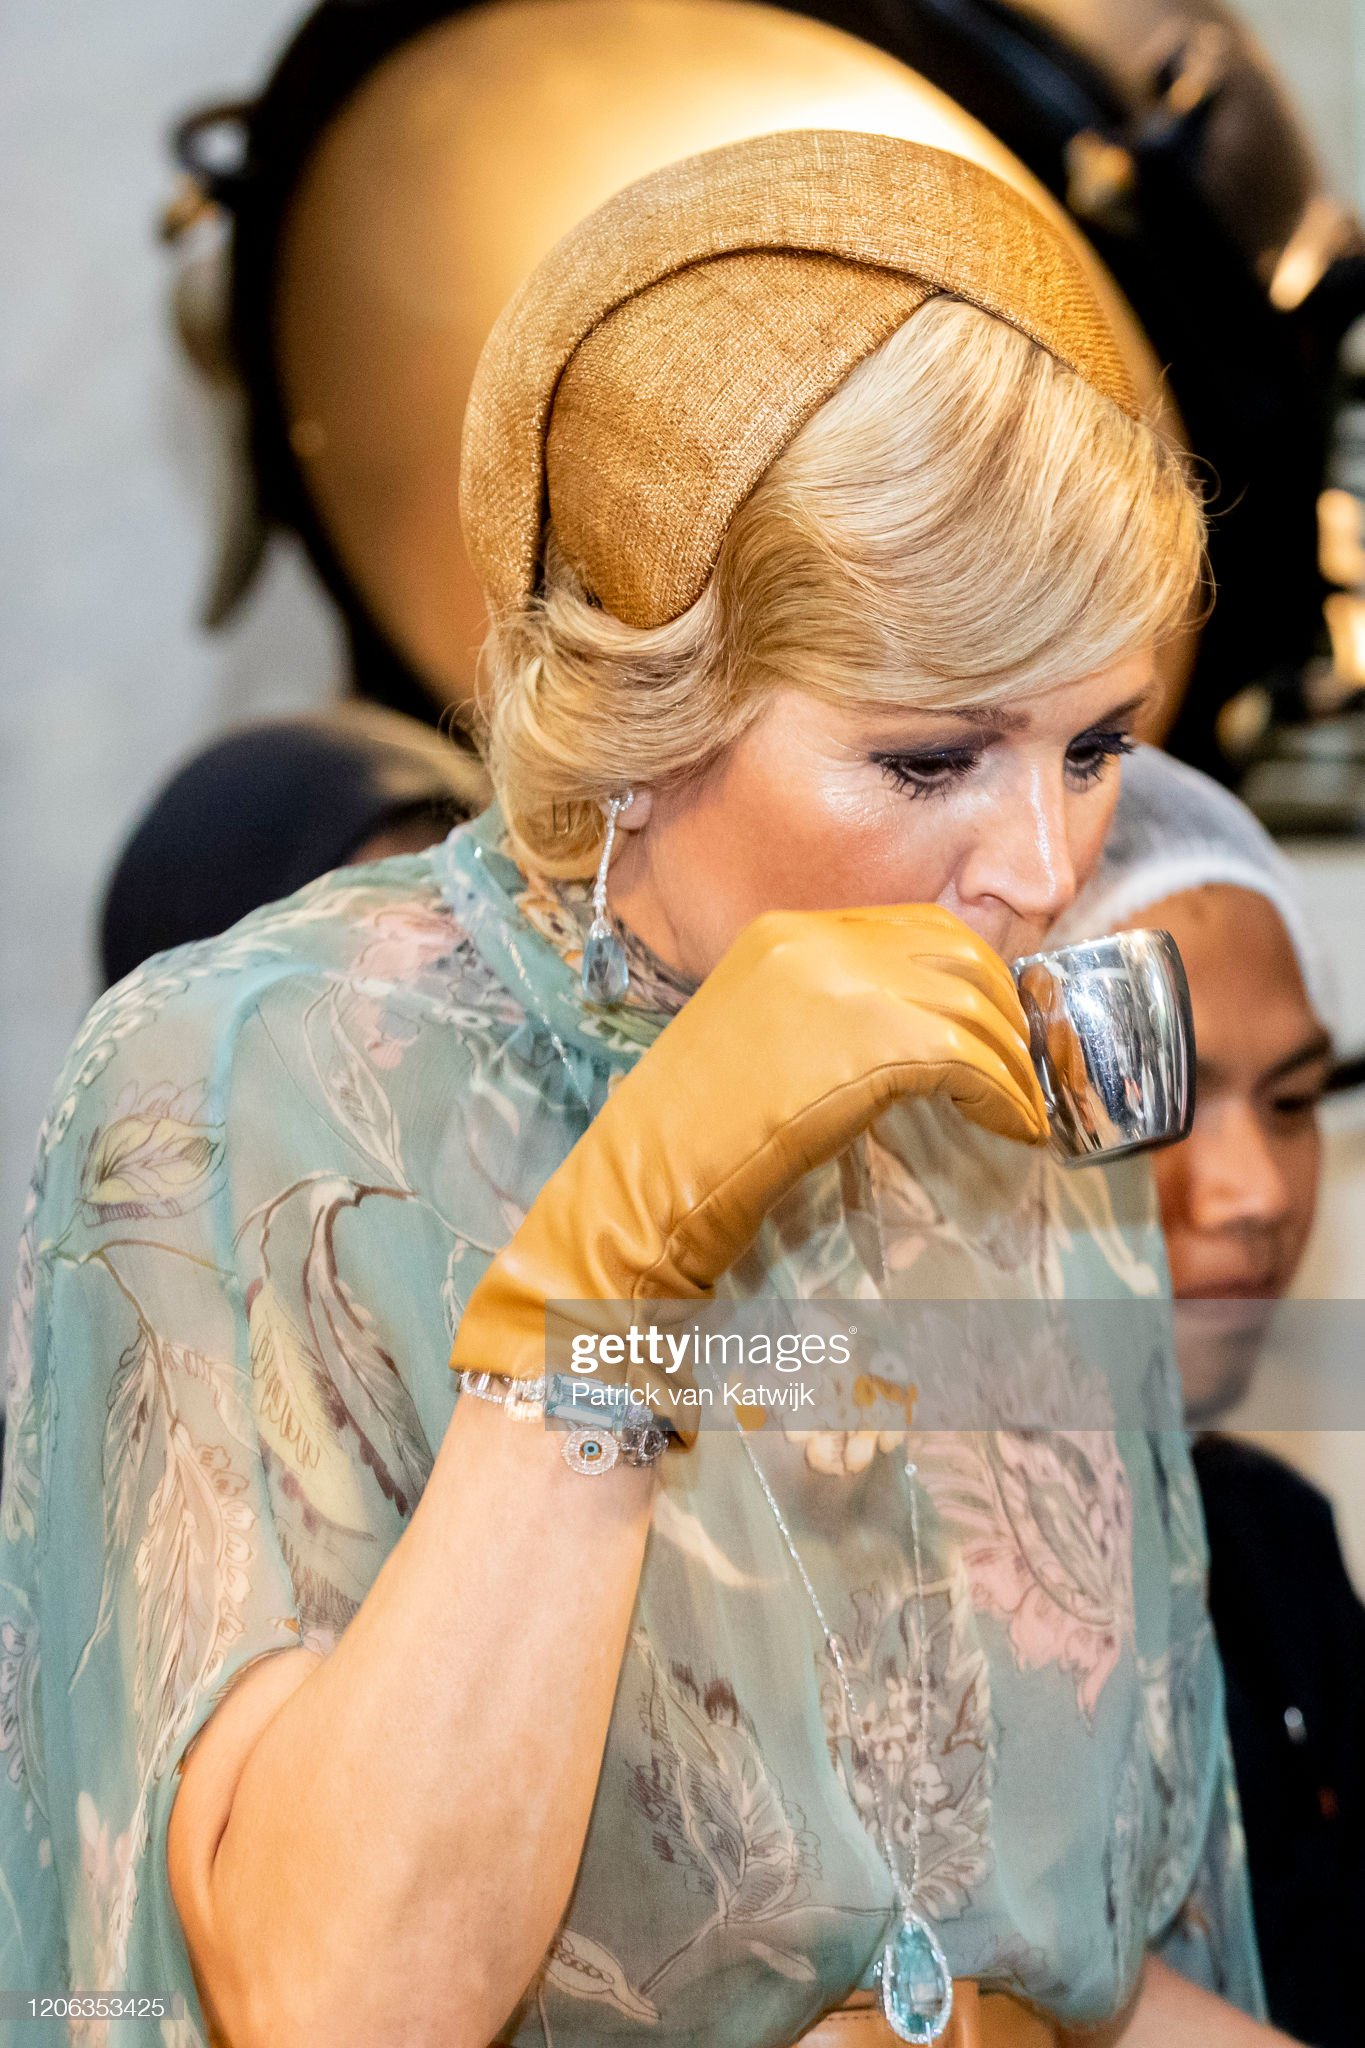 https://media.gettyimages.com/photos/queen-maxima-of-the-netherlands-visit-pipiltin-chocolate-factory-on-picture-id1206353425?s=2048x2048